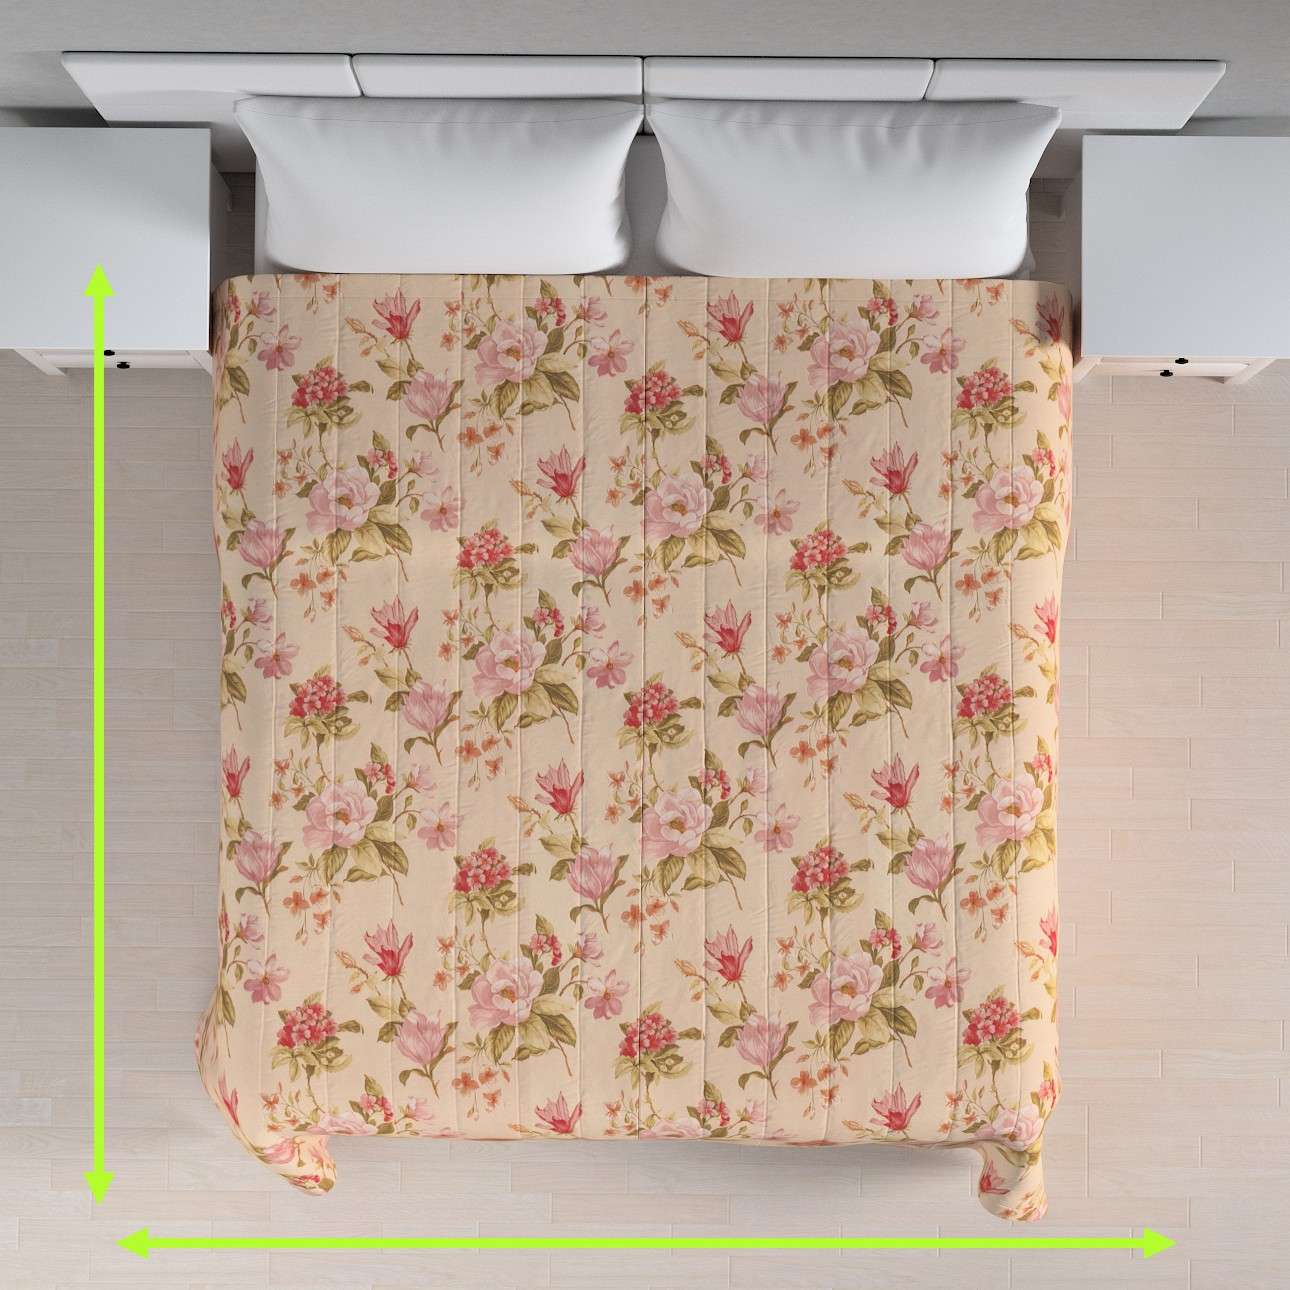 Quilted throw (vertical quilt pattern) in collection Londres, fabric: 123-05